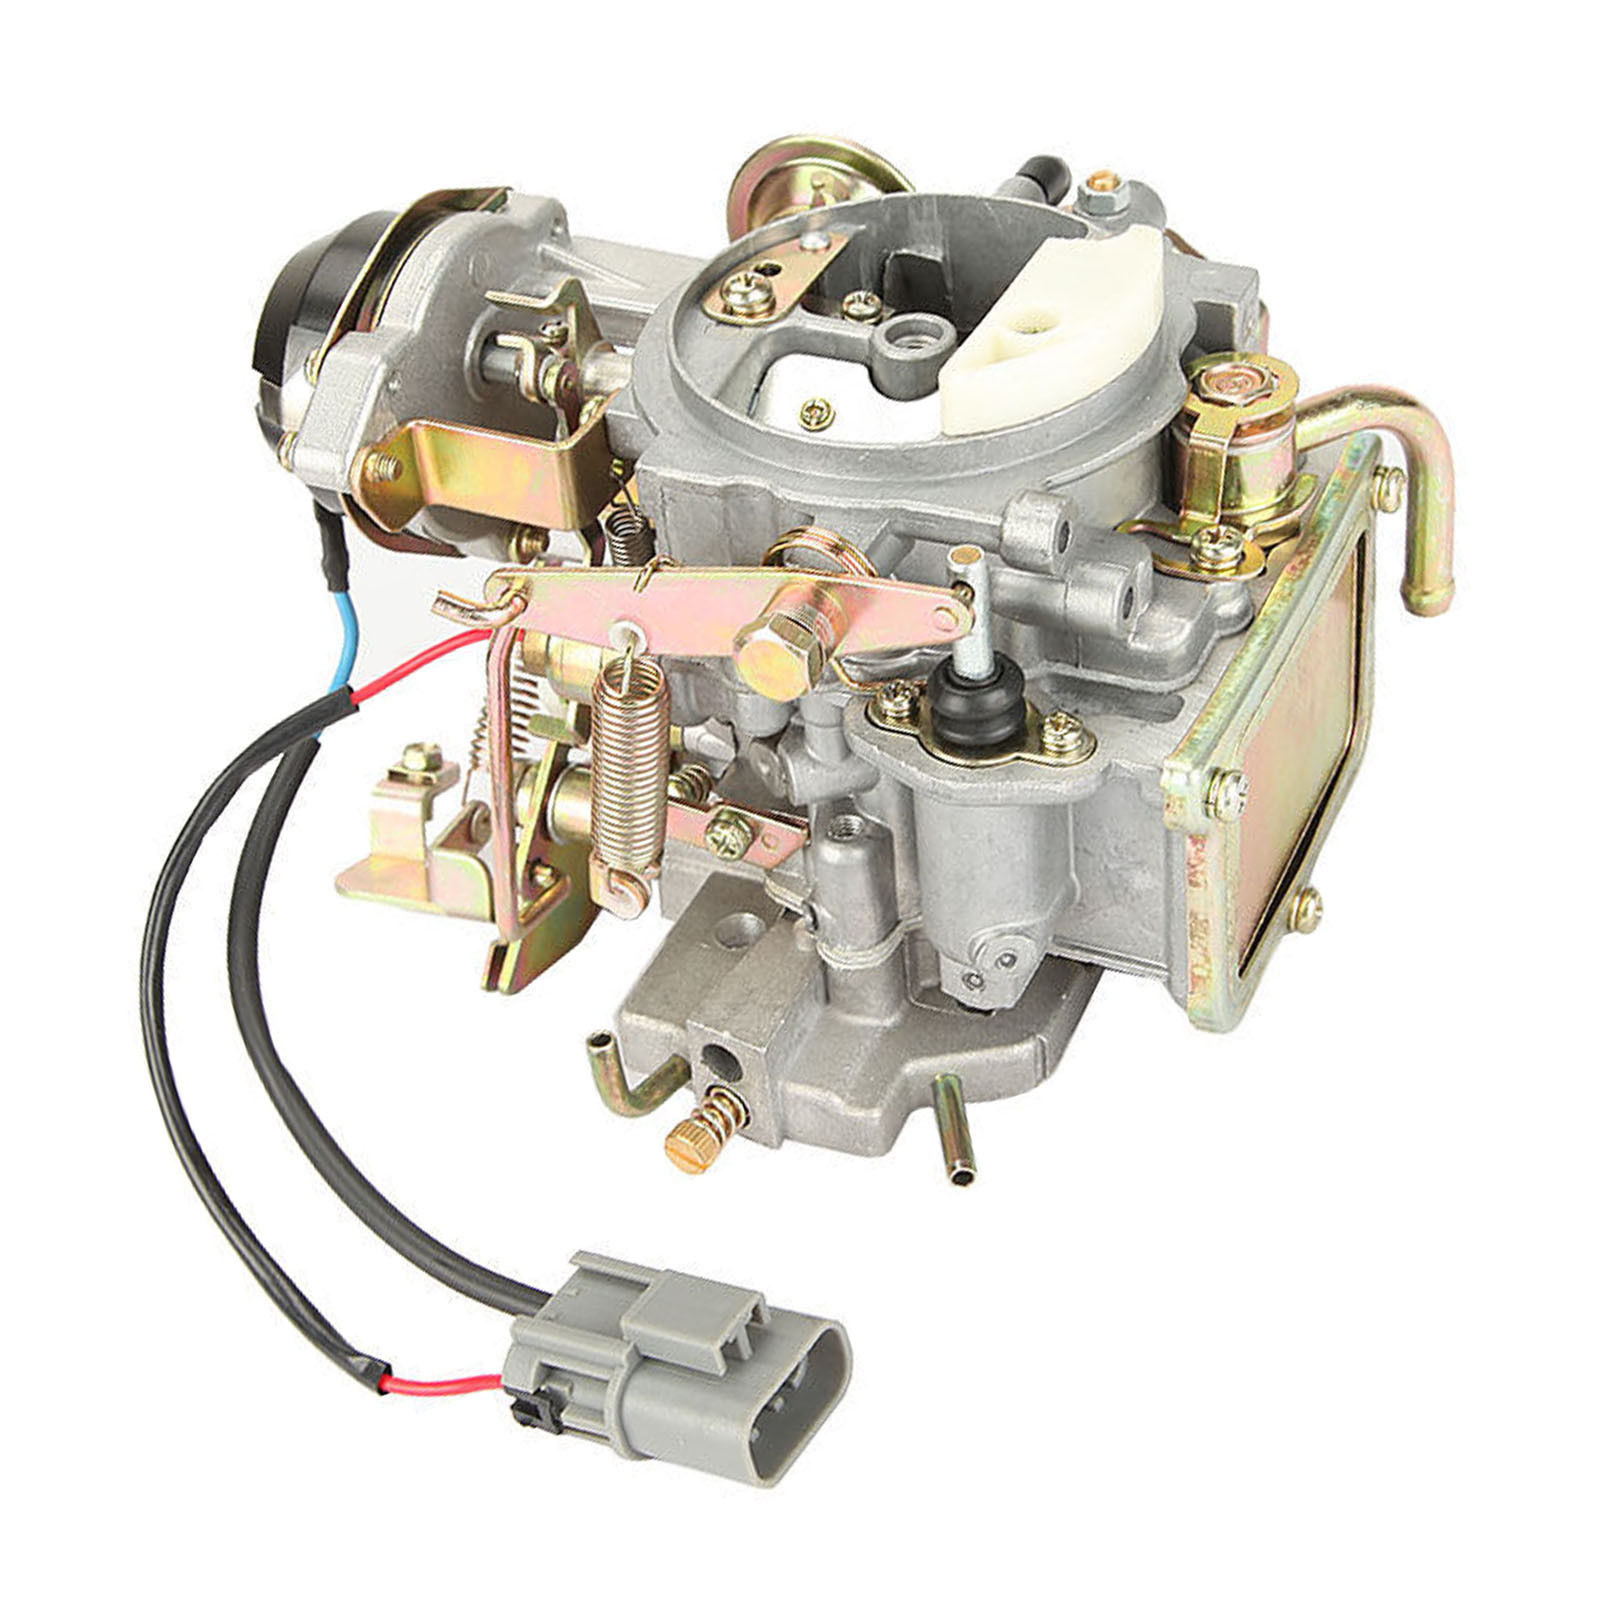 Remanufactured 16010 J1700 One Piece Carburetor For 1986 90 Pathfinder Datsun Engines Z24